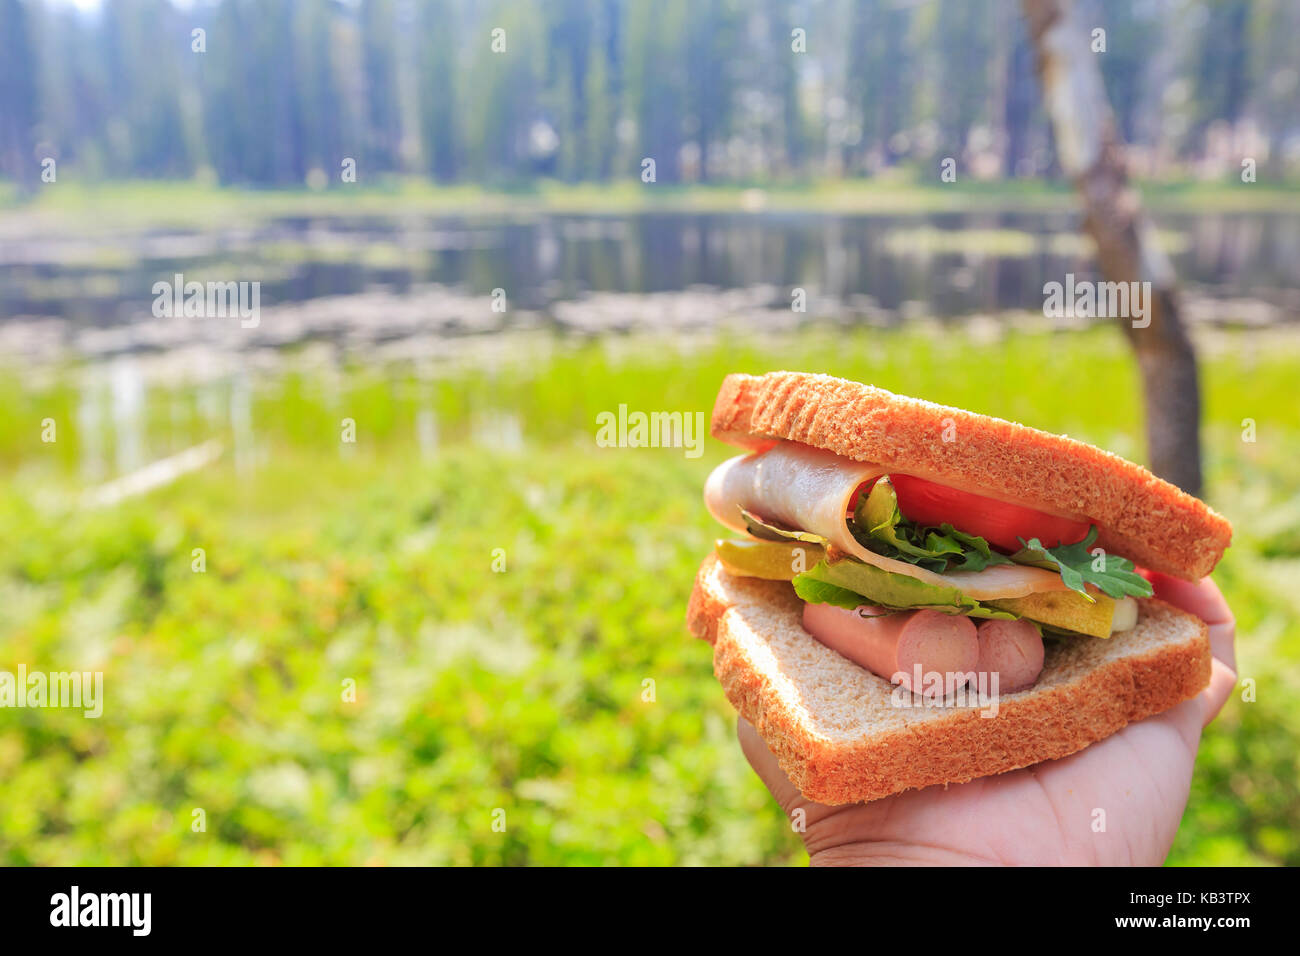 Close up shot of handmade sandwich, made with sausage, ham and vegtable - Stock Image